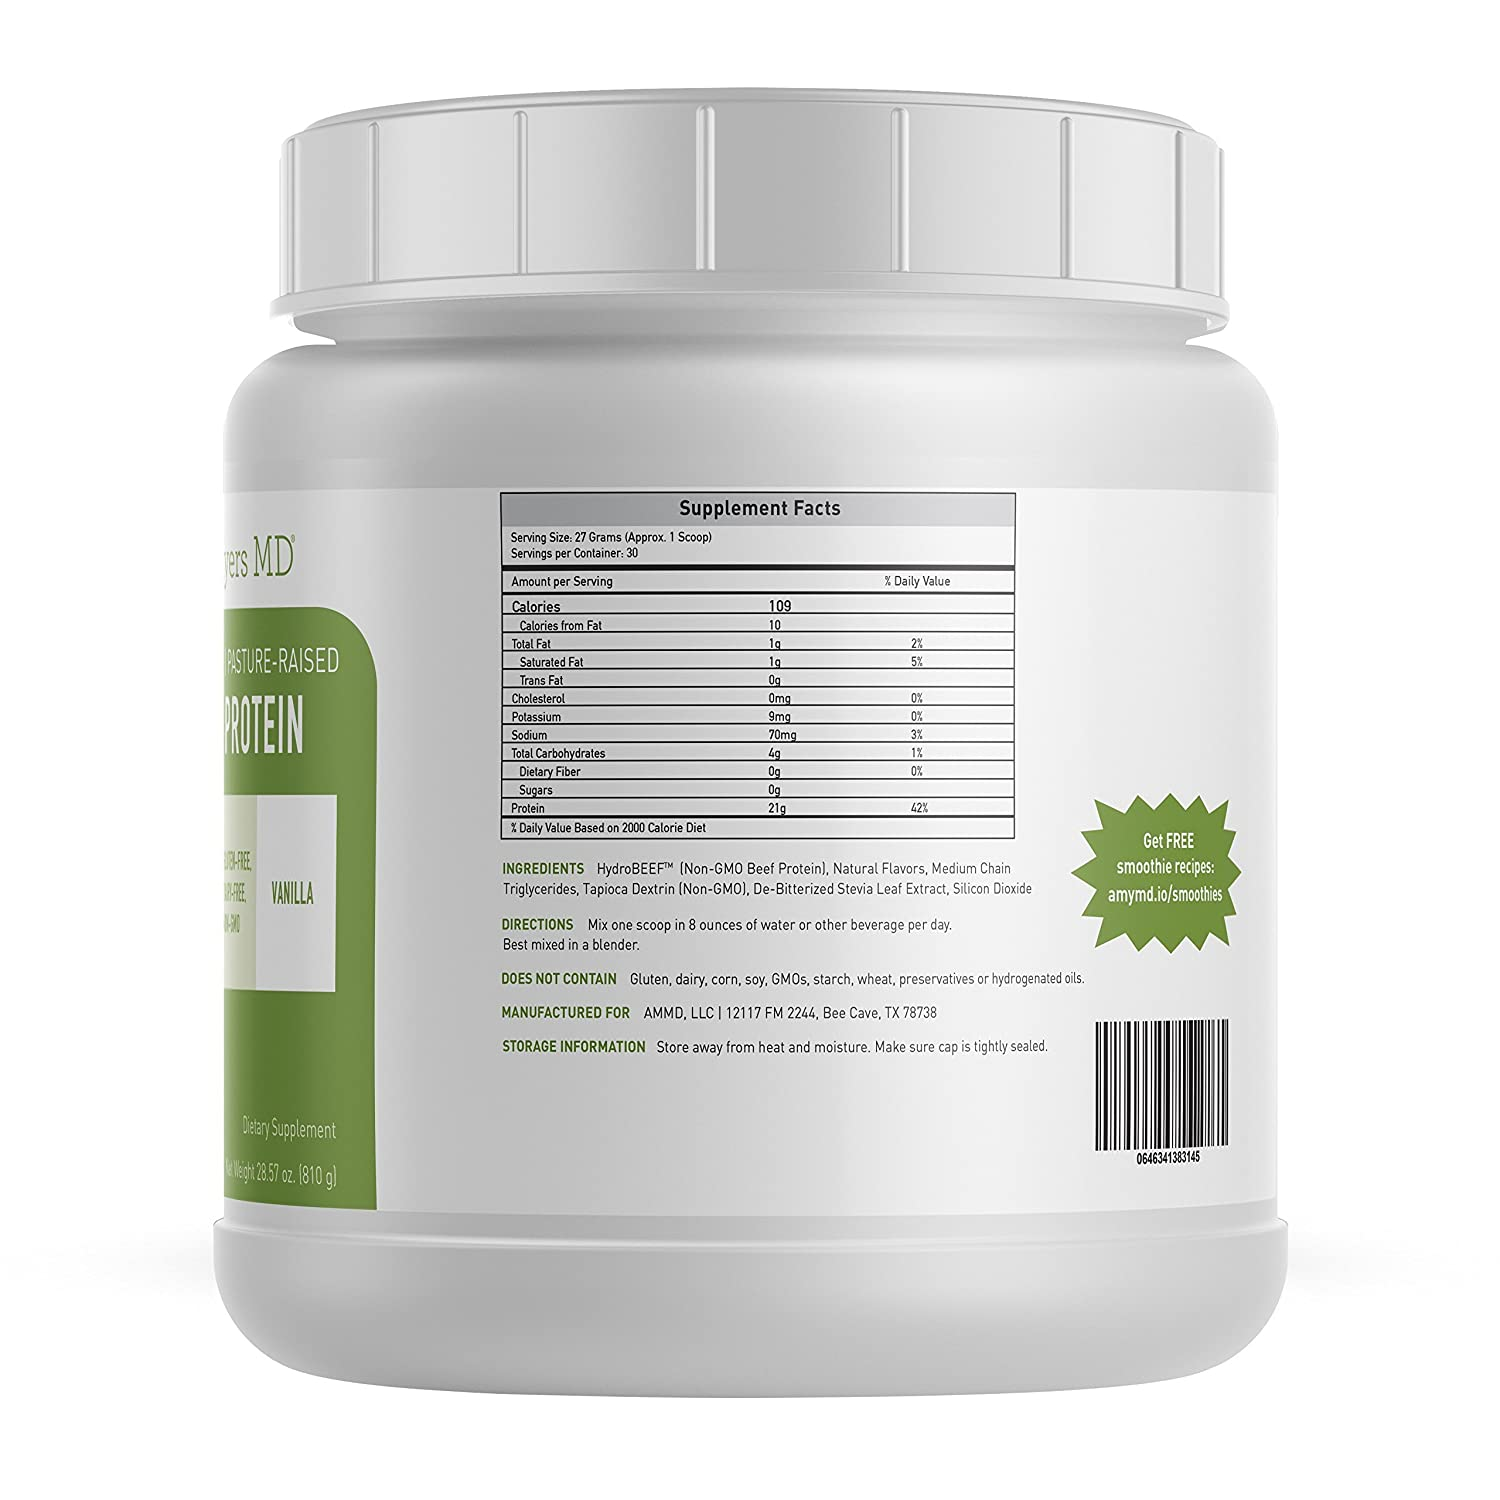 Pure Paleo Protein by Dr. Amy Myers Clean Grass Fed, Pasture Raised Hormone Free HyrdoBEEF Protein, Non-GMO, Gluten Dairy Free 21g Protein Per Serving Creamy Vanilla Shake for Paleo and Keto